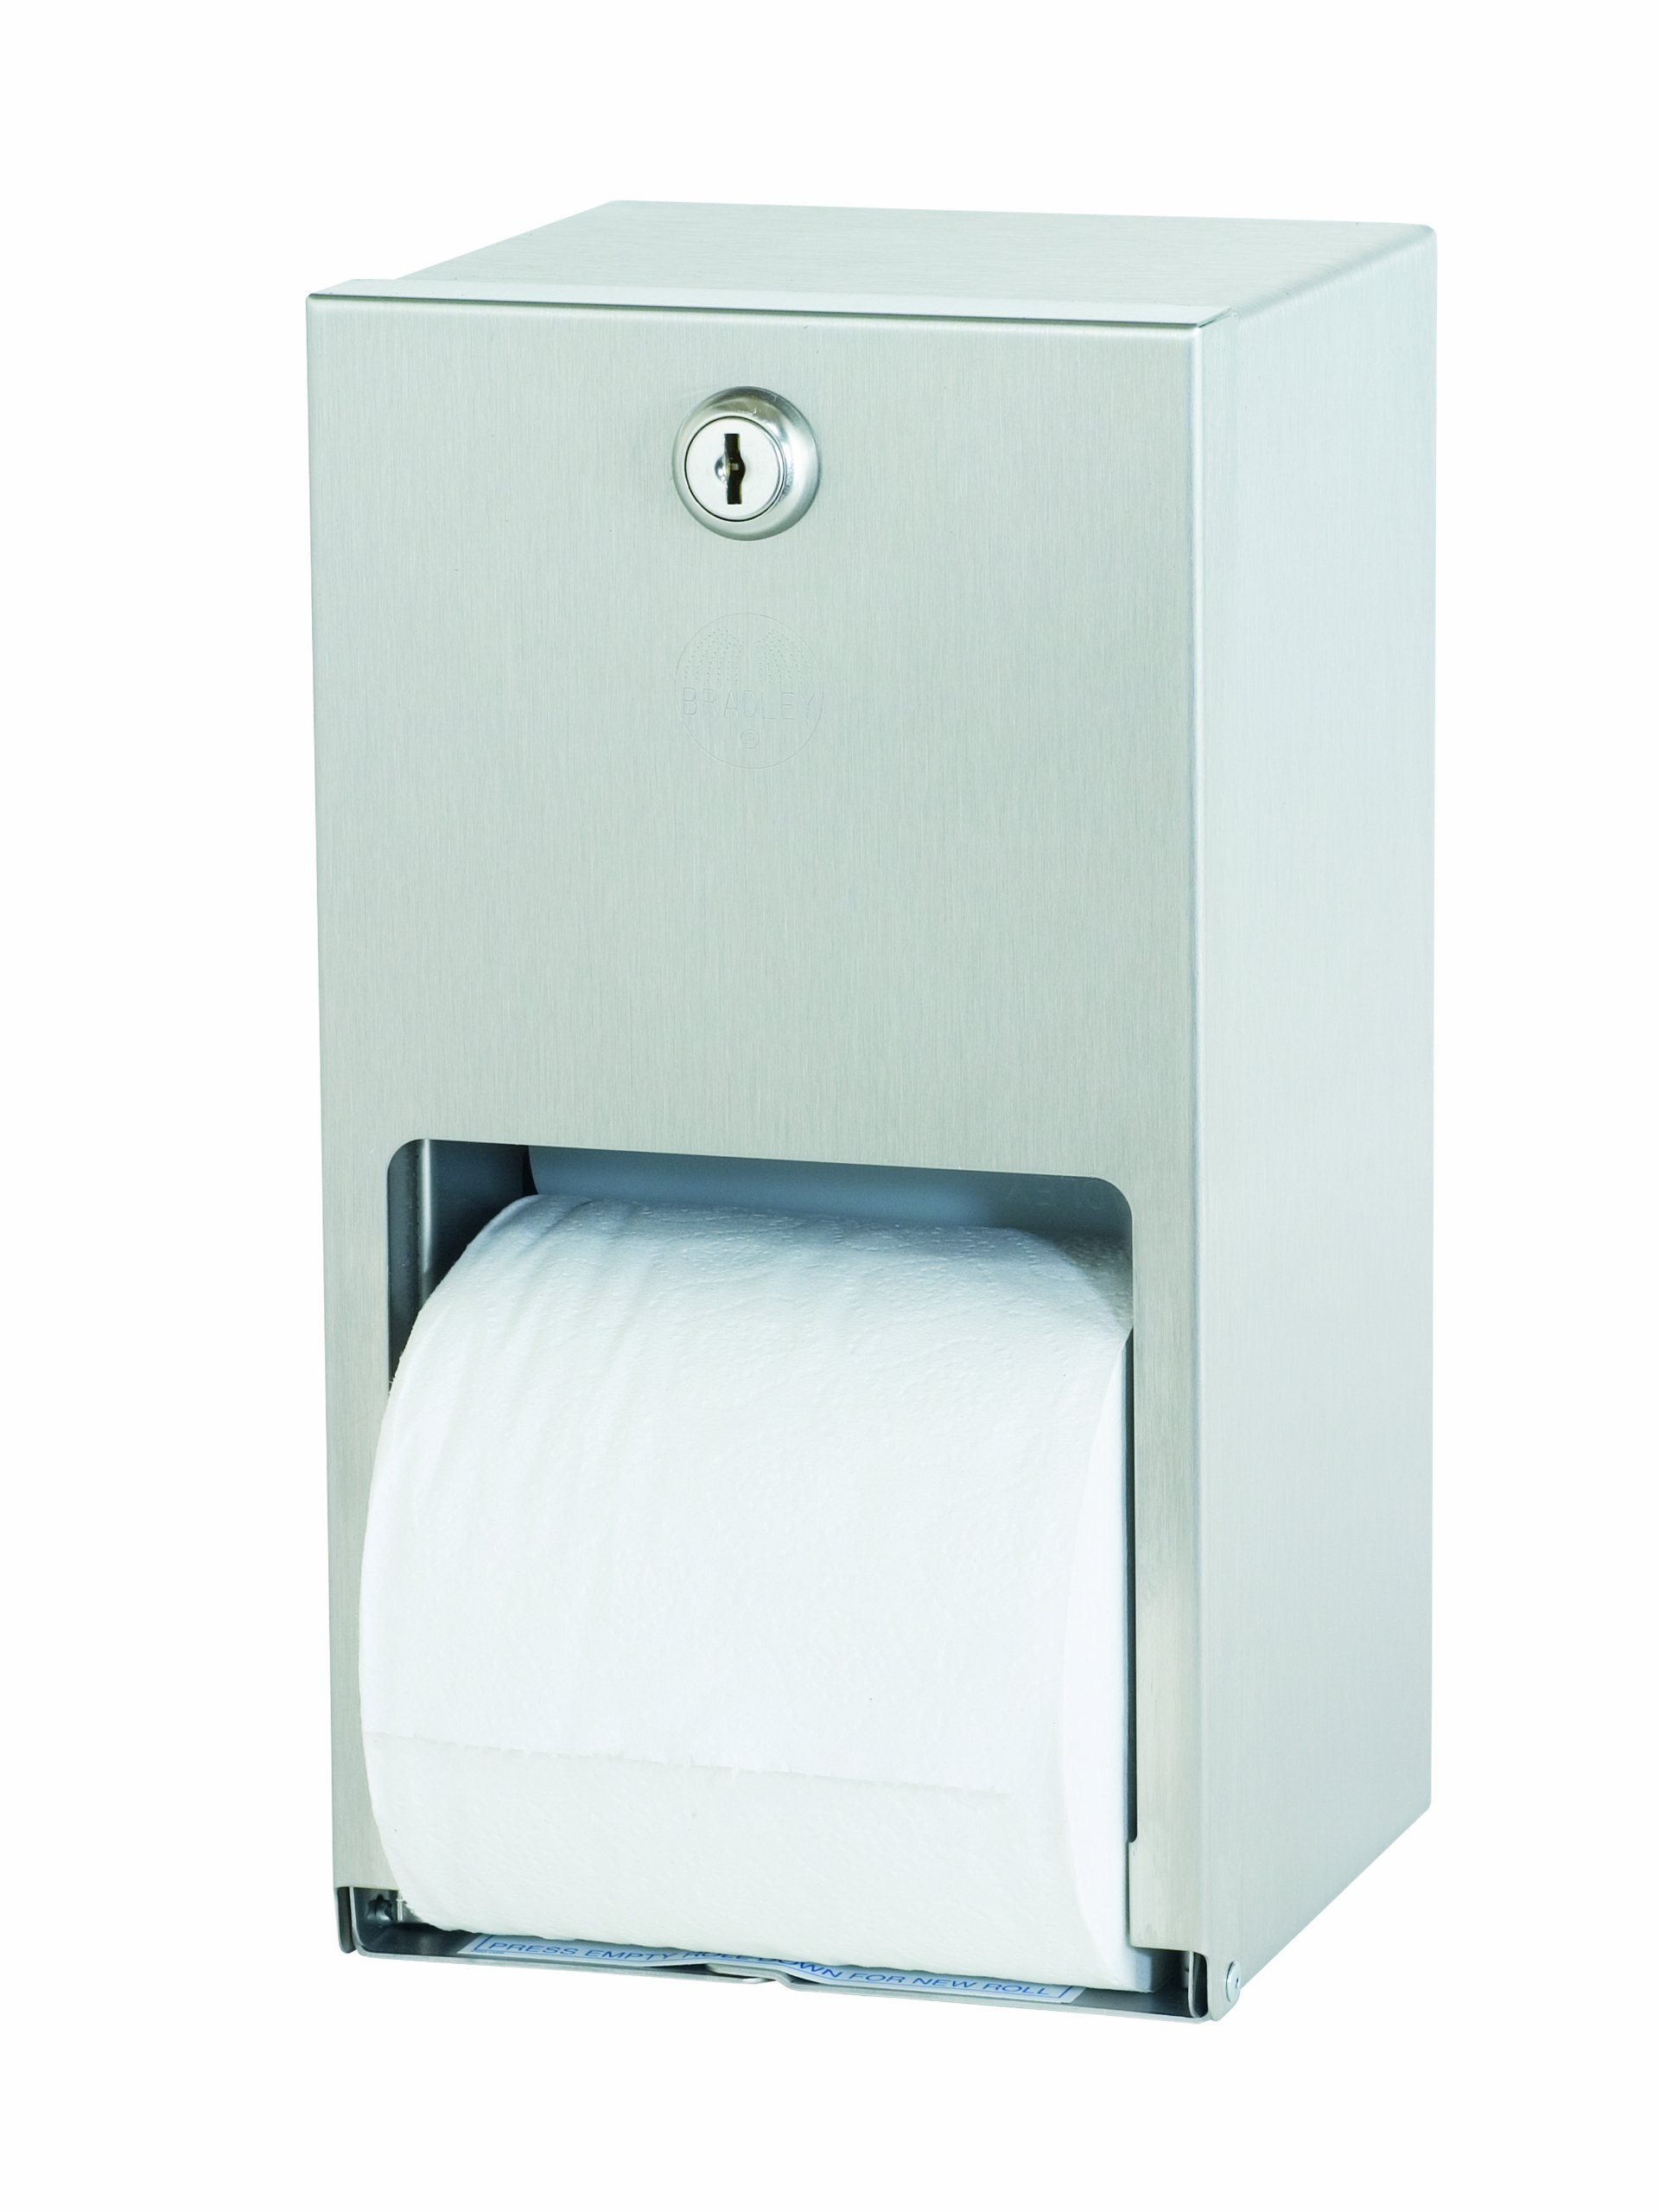 Bradley 5402-000000 22 Gauge Stainless Steel Surface Mounted Toilet Tissue Dispenser, 5-9/16'' Width x 10-3/8'' Height x 5-5/16'' Depth